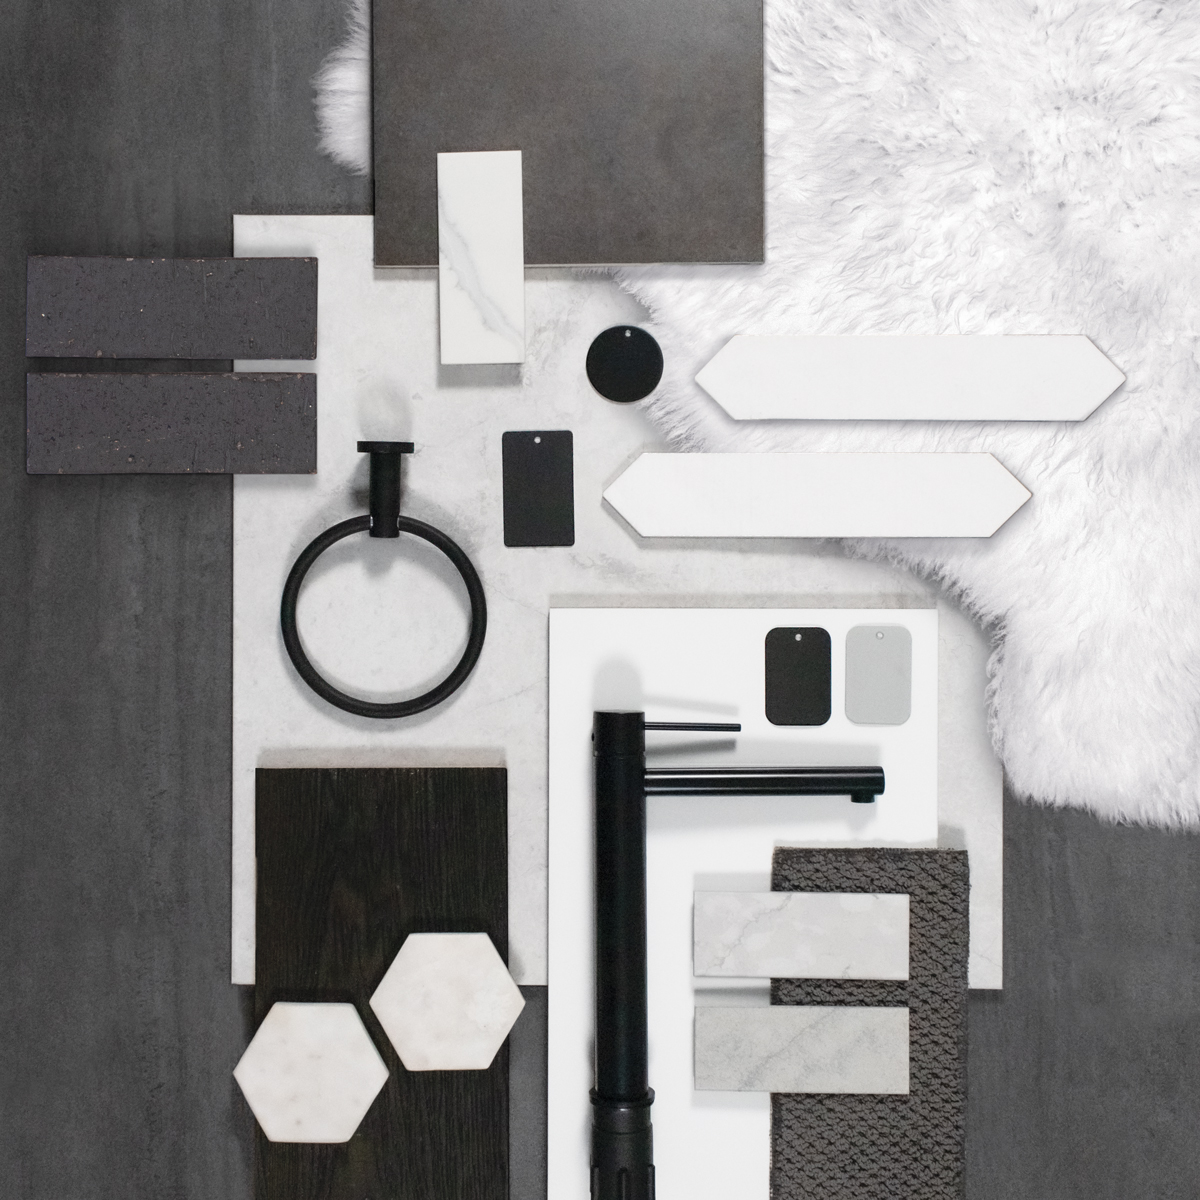 Modernist expression interior design flat lay